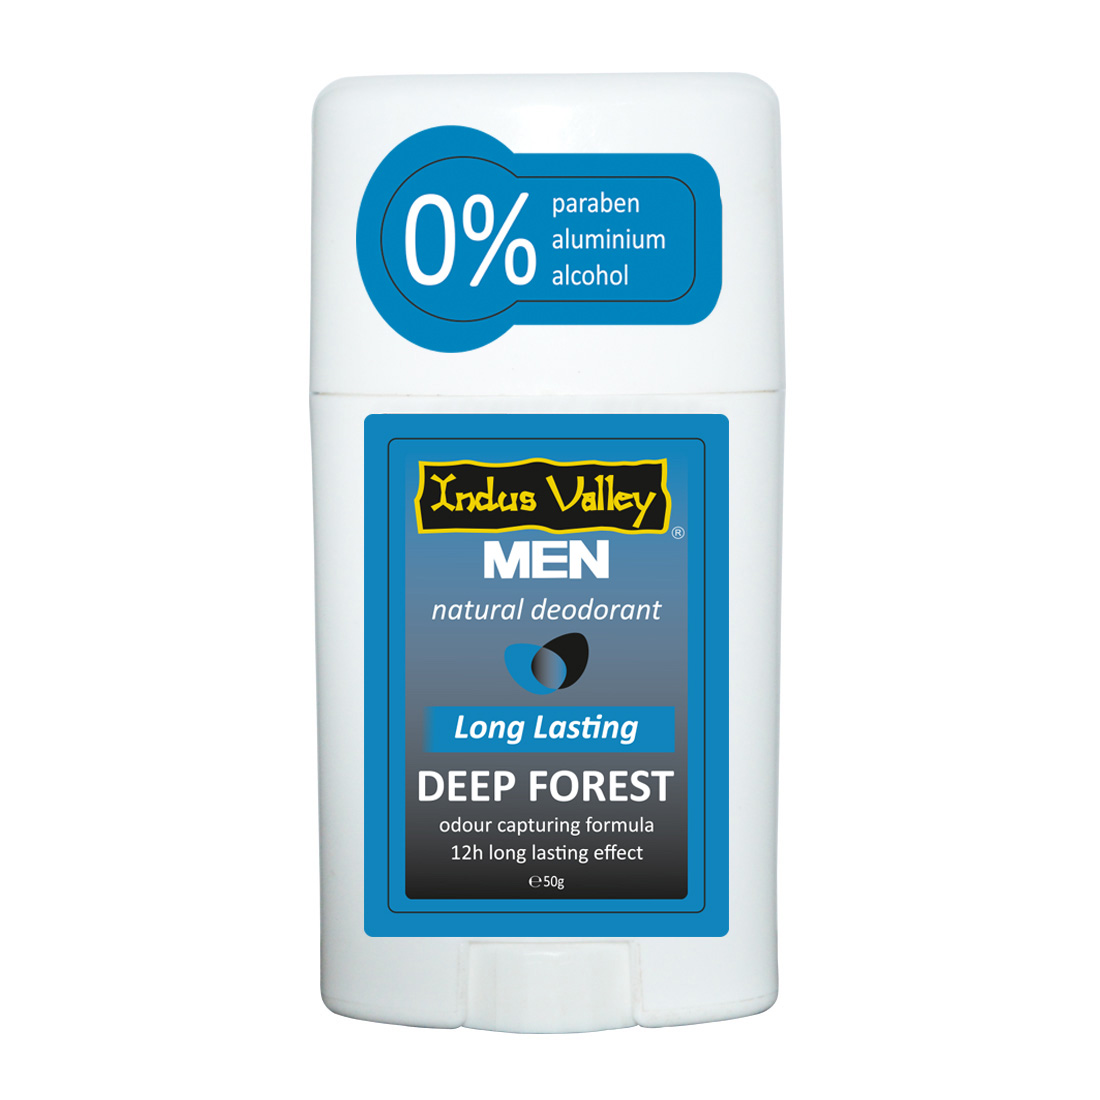 Indus Valley Deep Forest Natural Deodorant